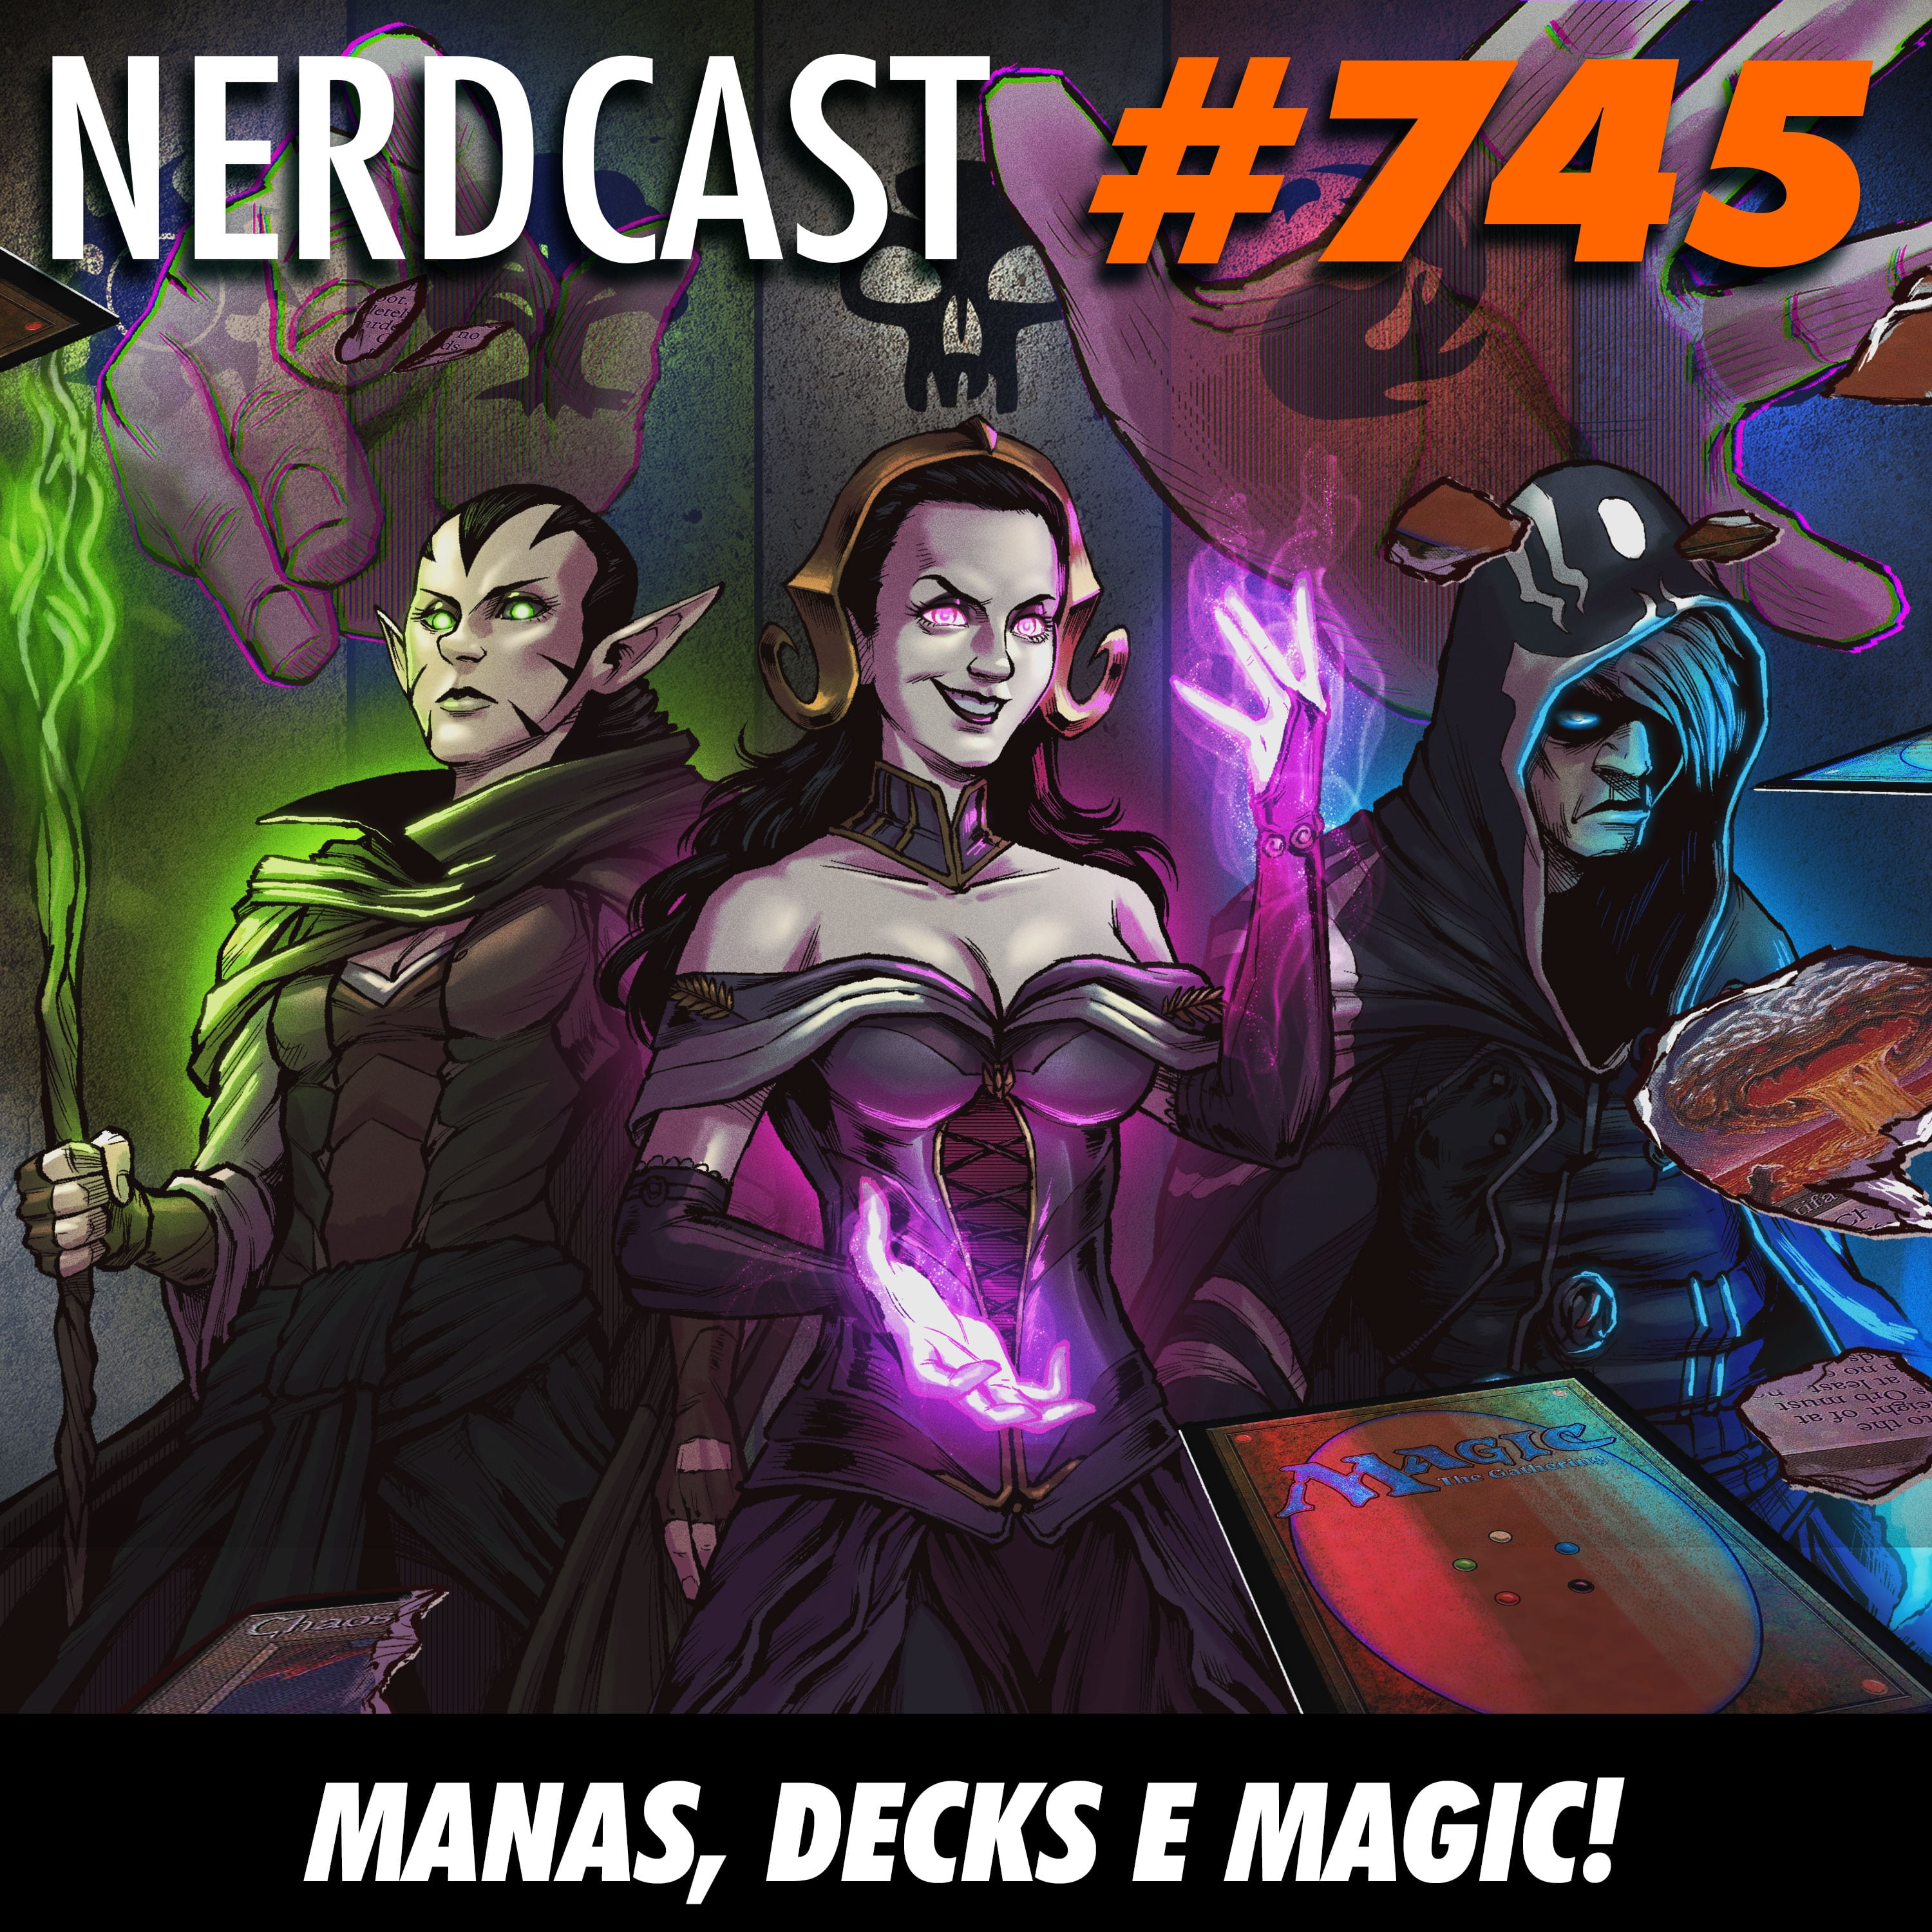 NerdCast 745 - Manas, decks e Magic!